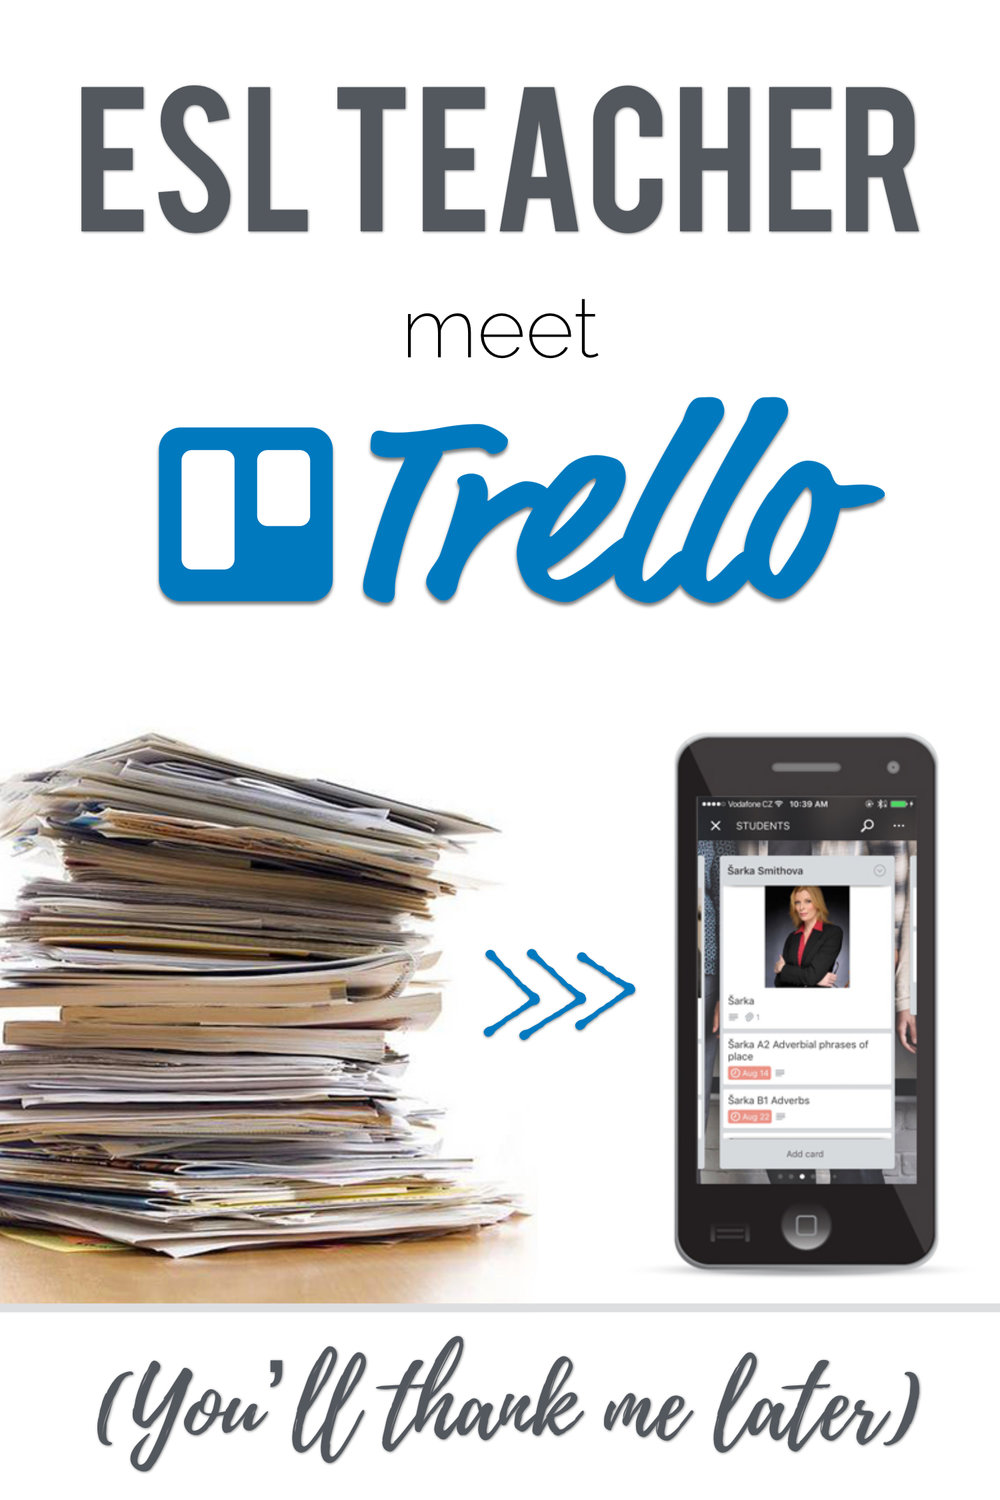 Teacher Meet Trello.001.jpeg